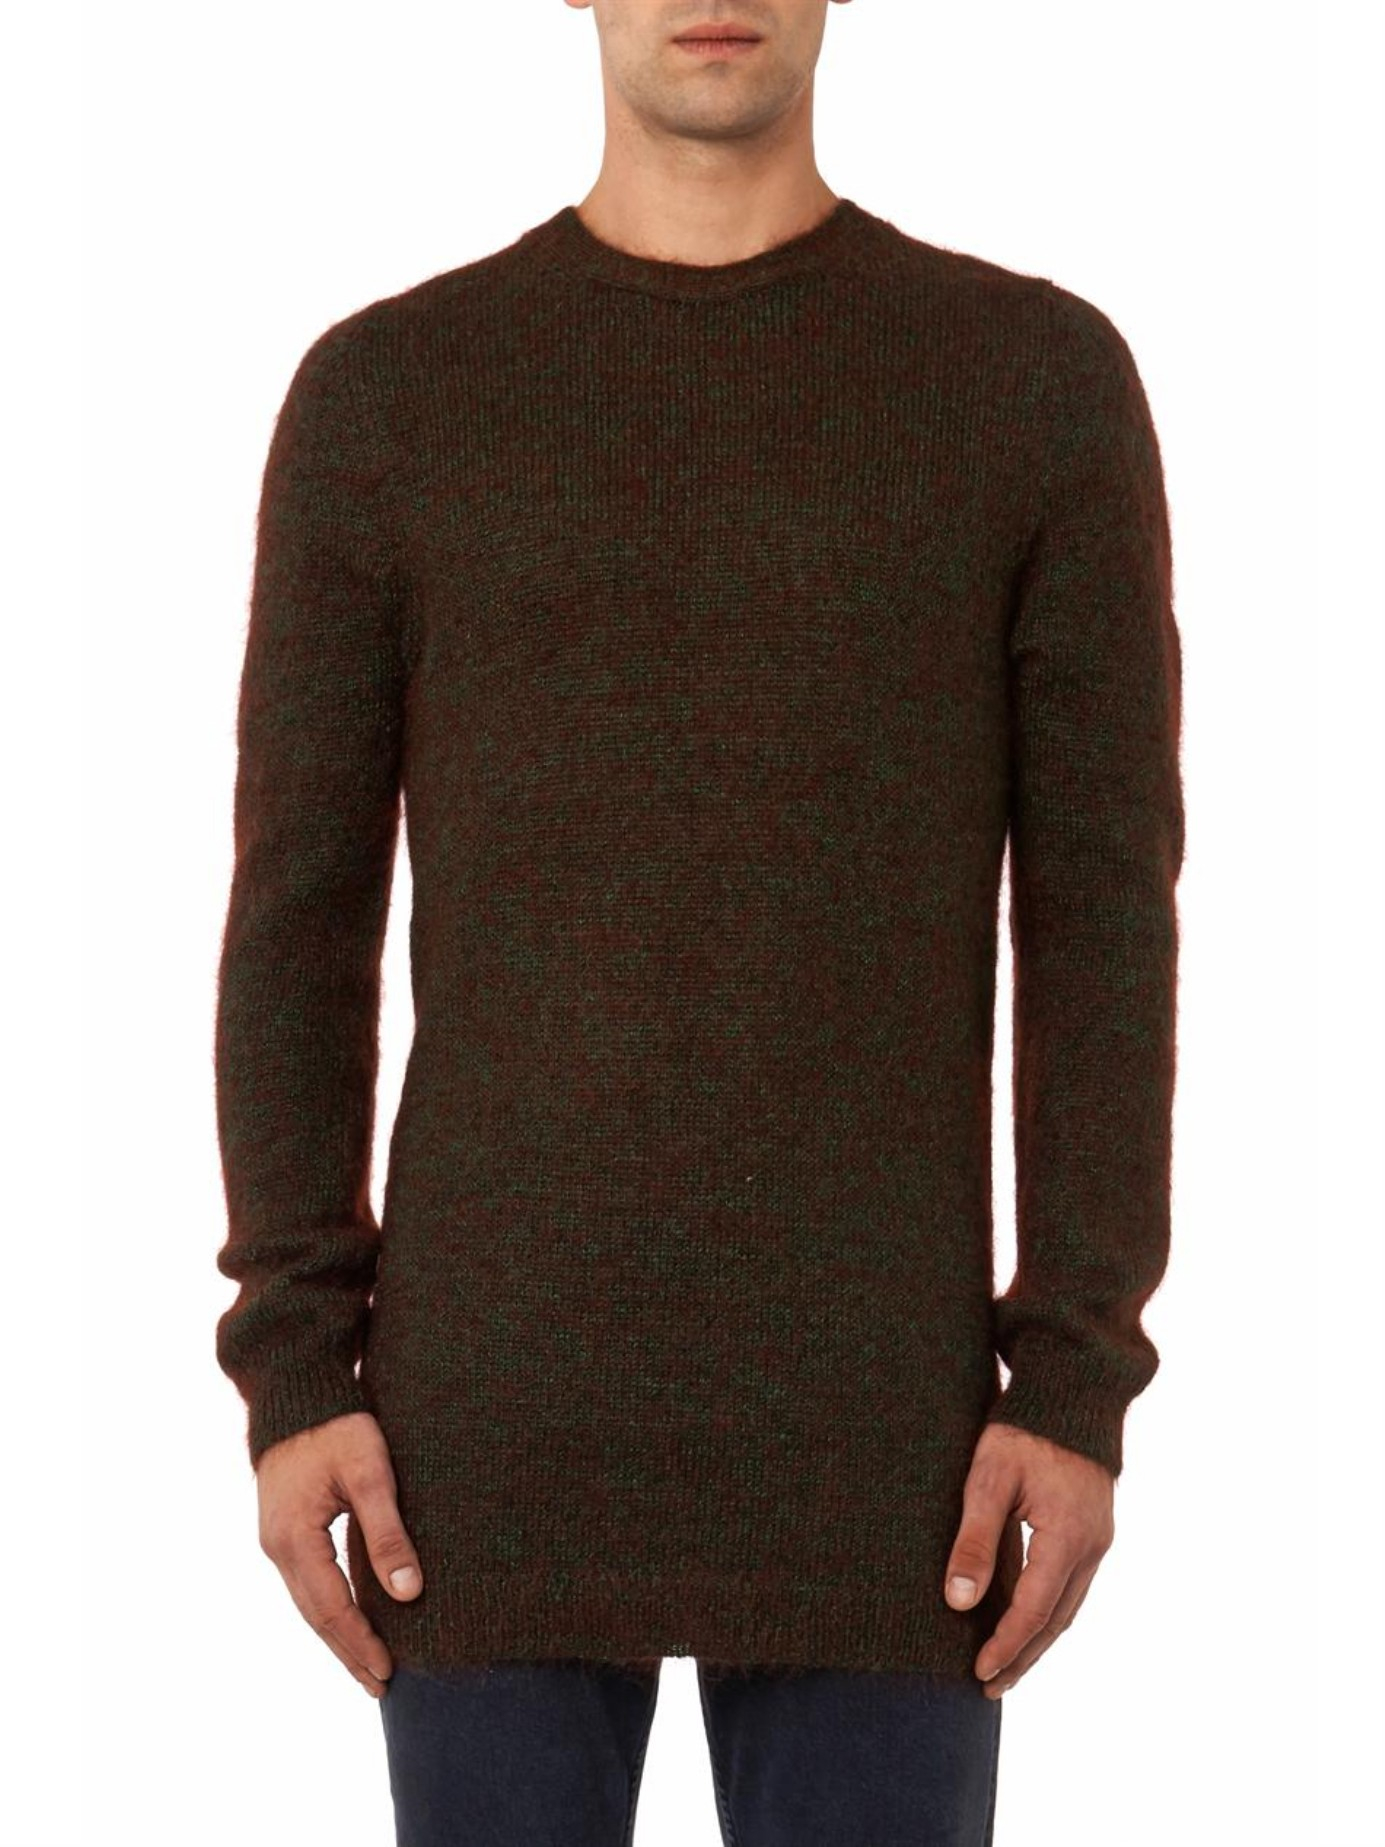 lyst acne studios costa shine melange sweater in brown for men. Black Bedroom Furniture Sets. Home Design Ideas